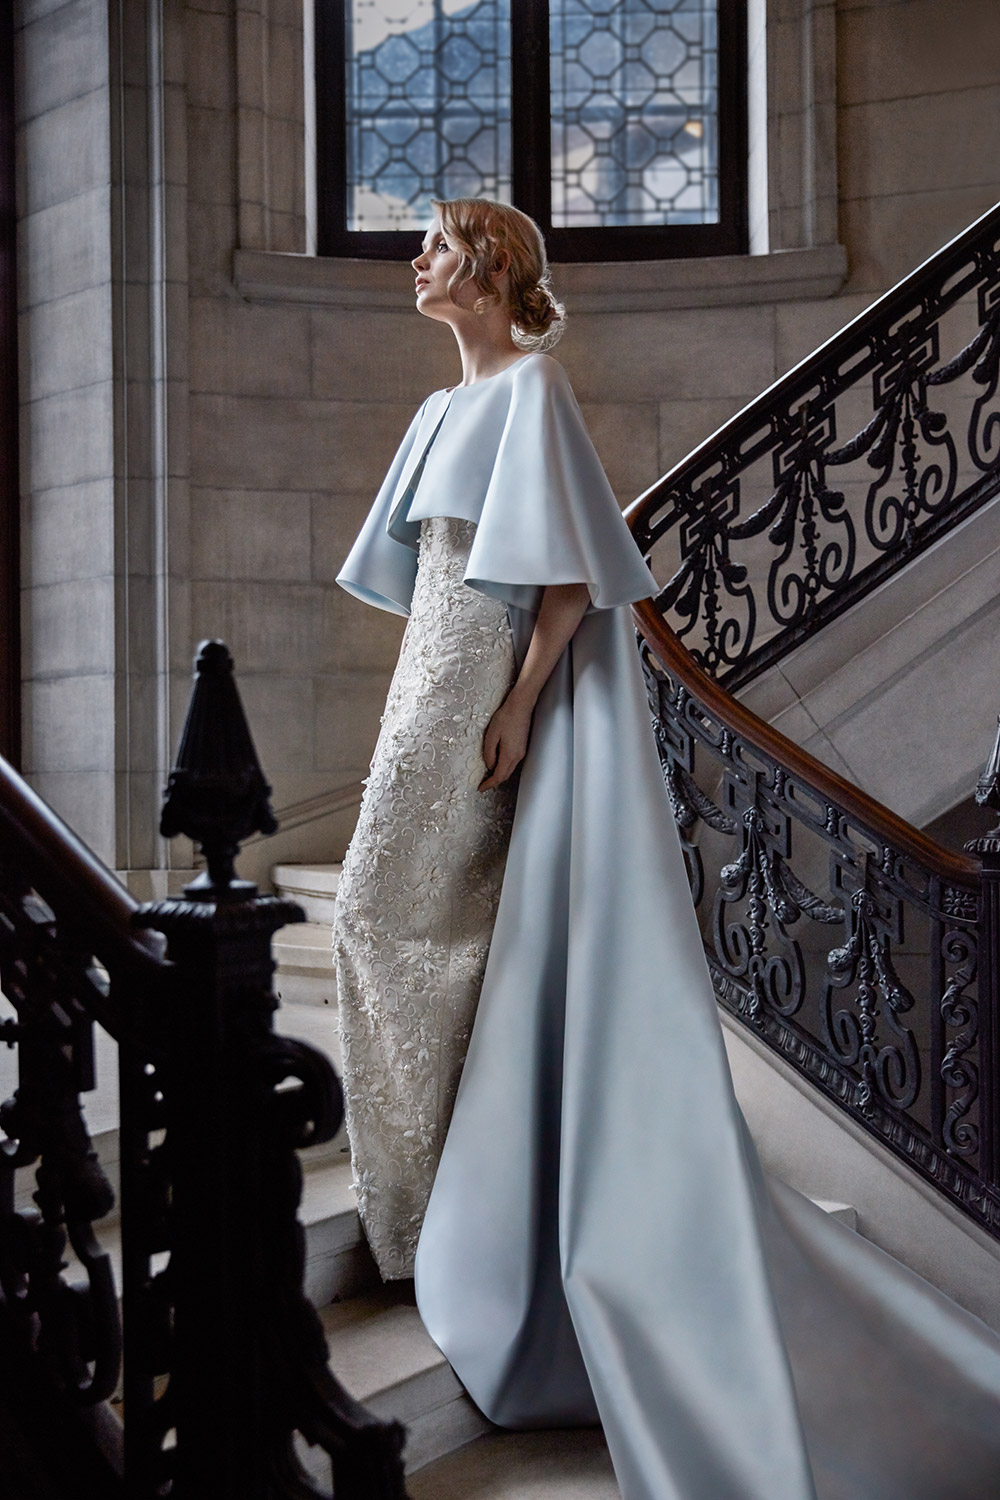 Farah - Sareh Nouri Spring 2020 Collection. www.theweddingnotebook.com